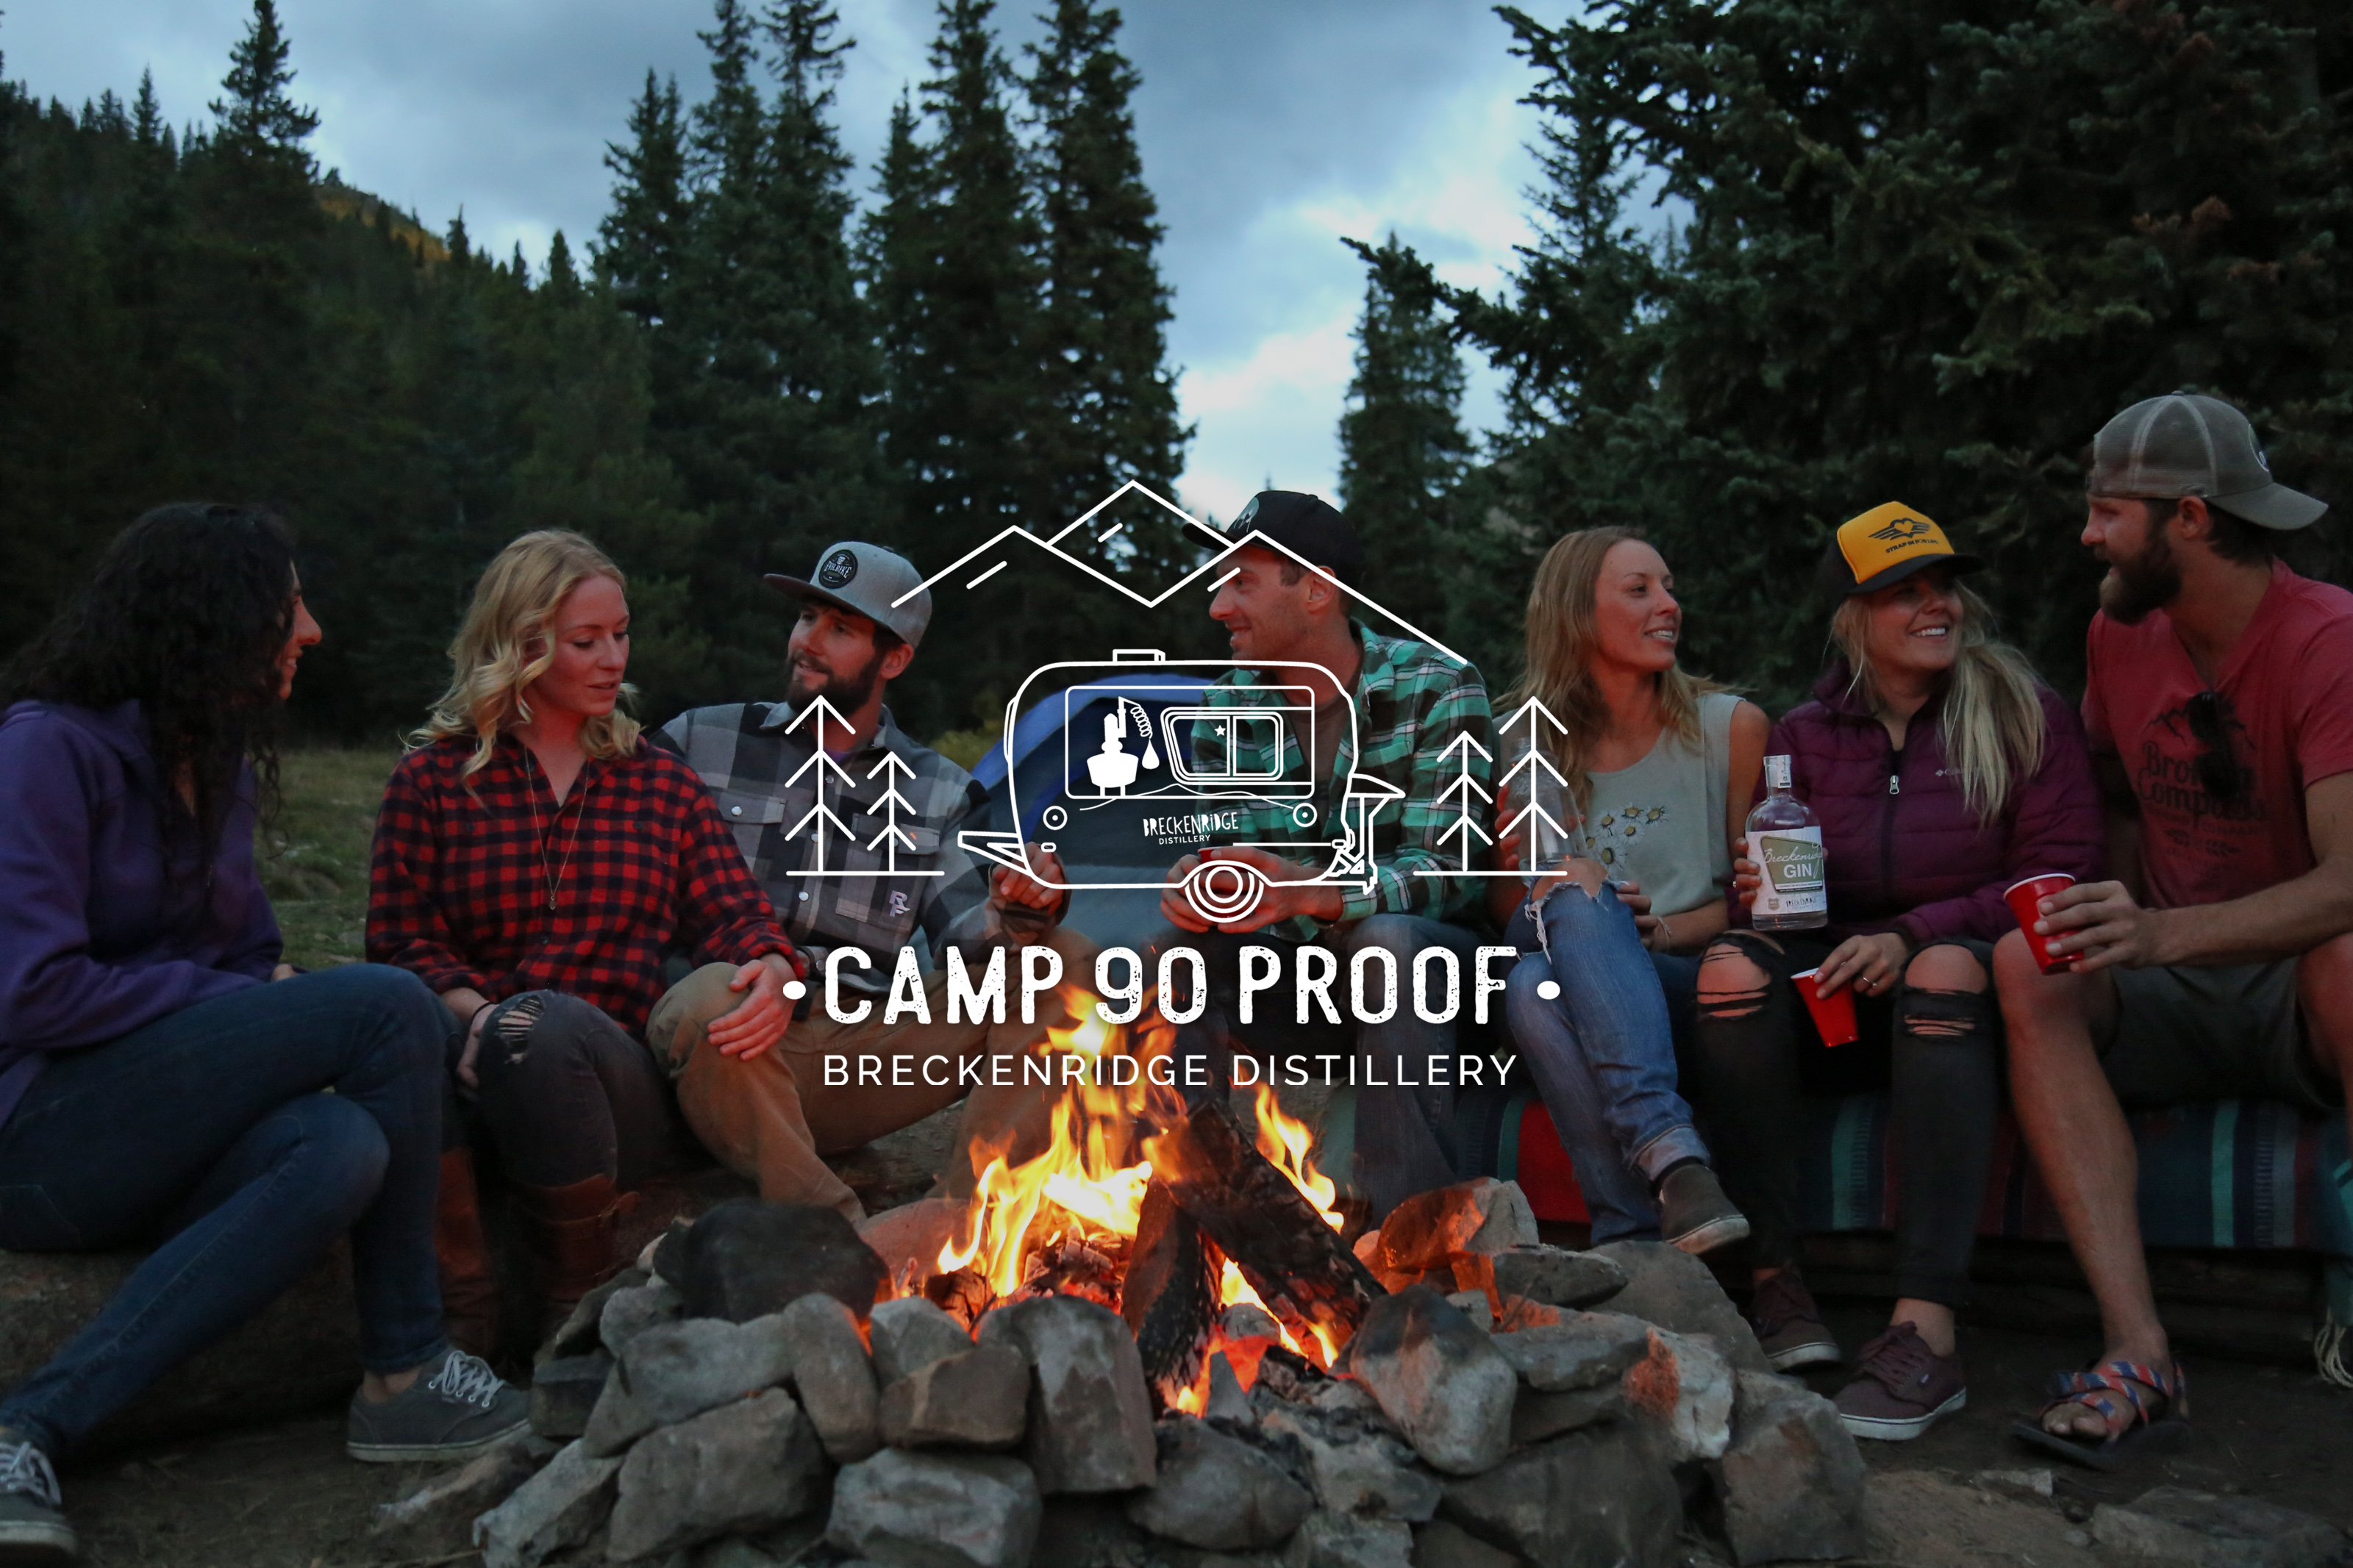 CAMP 90 PROOF: Breckenridge Distillery Summer Series